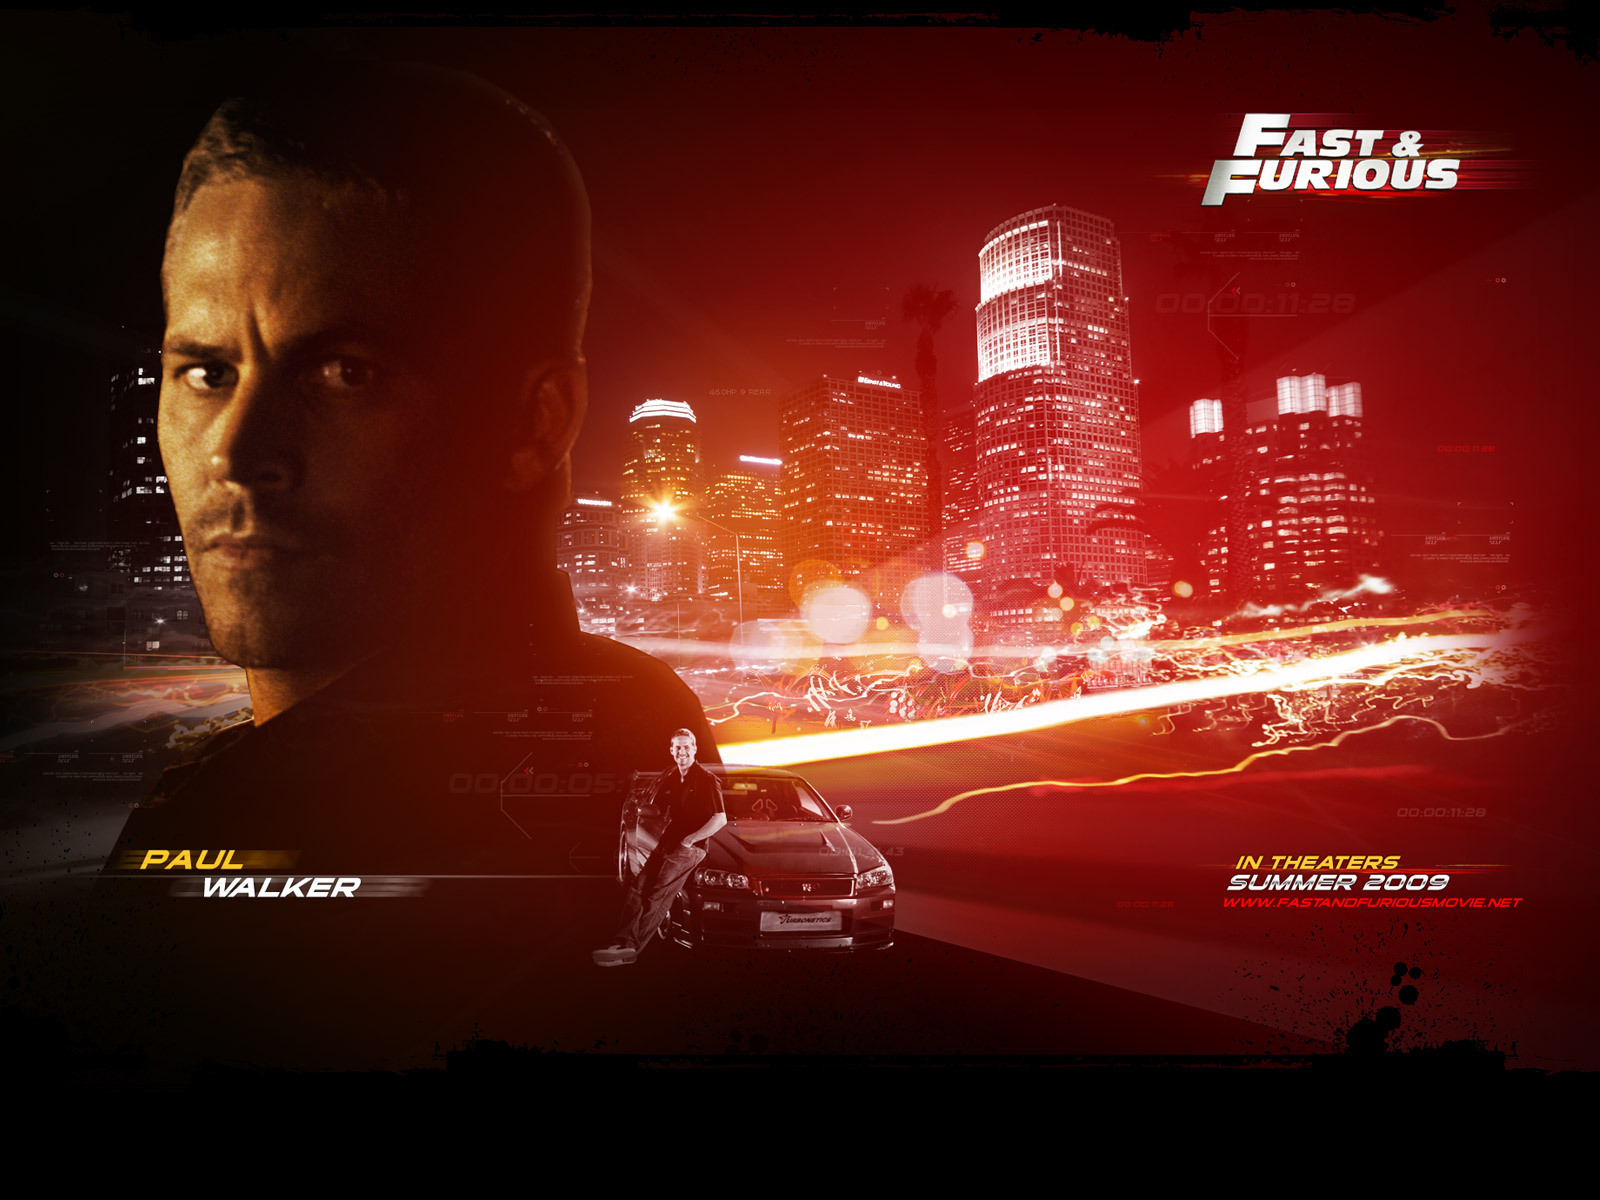 fast and furious fast and furious wallpaper 2737003